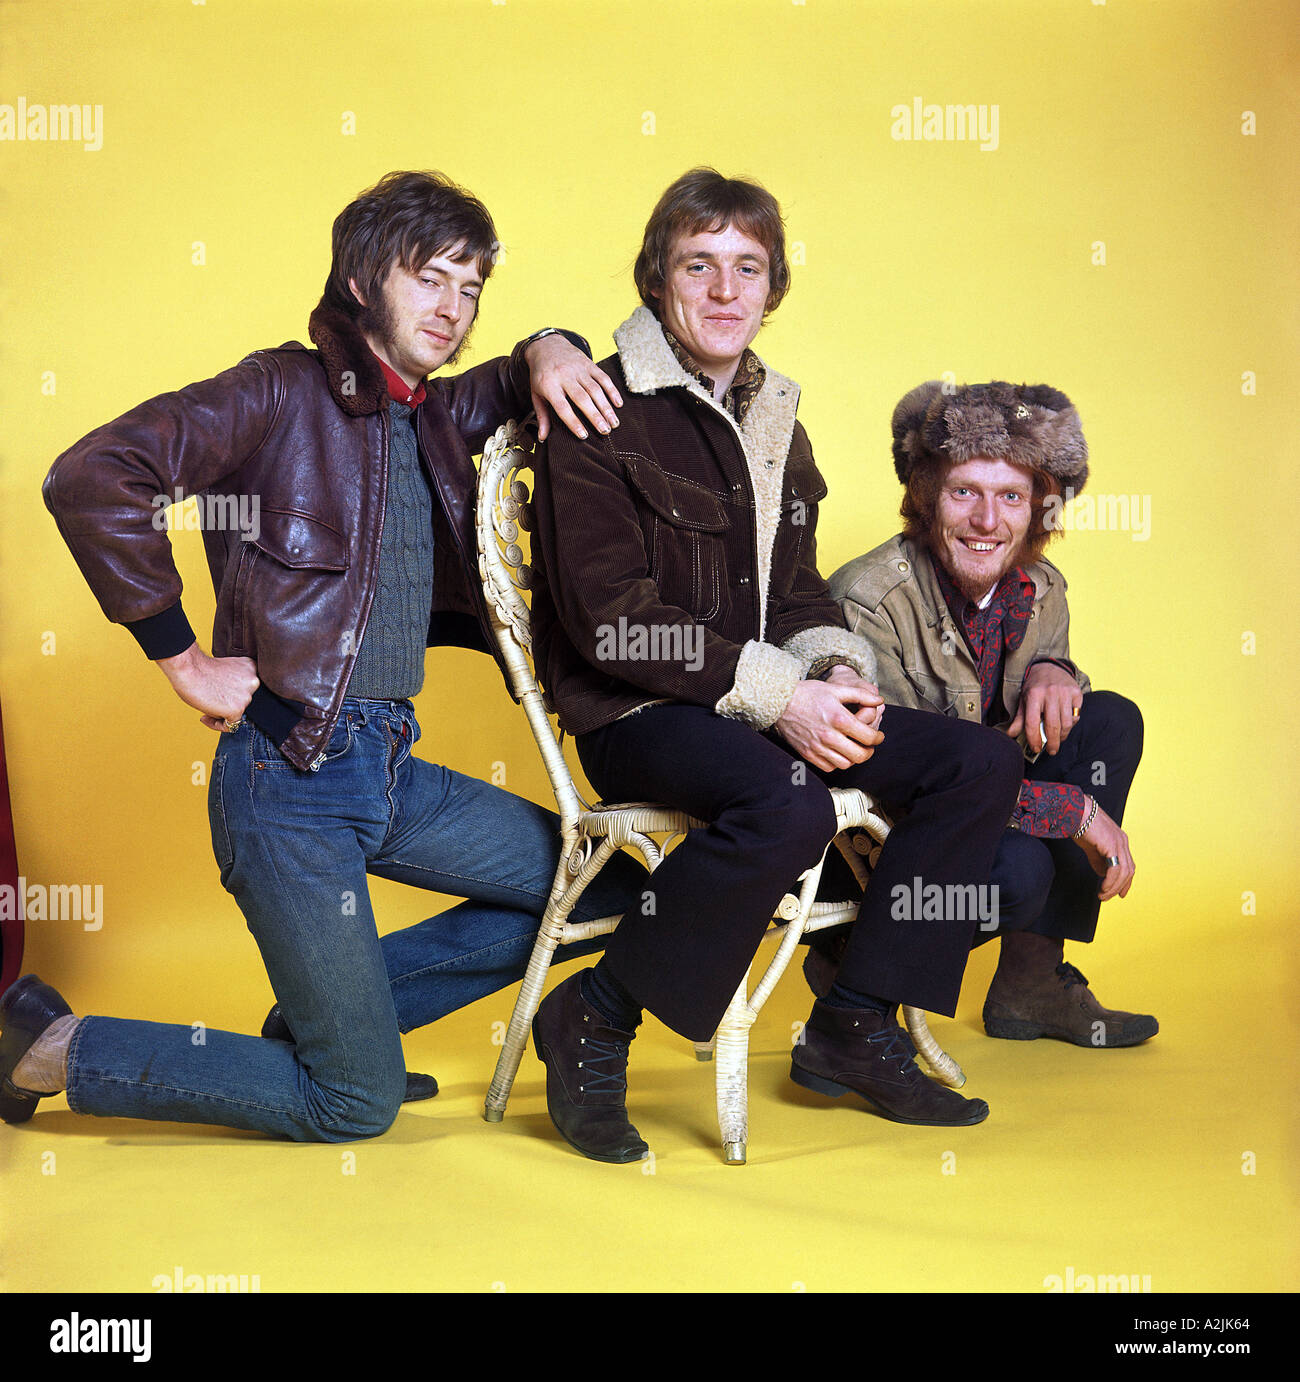 cream band 60s stock photos cream band 60s stock images alamy